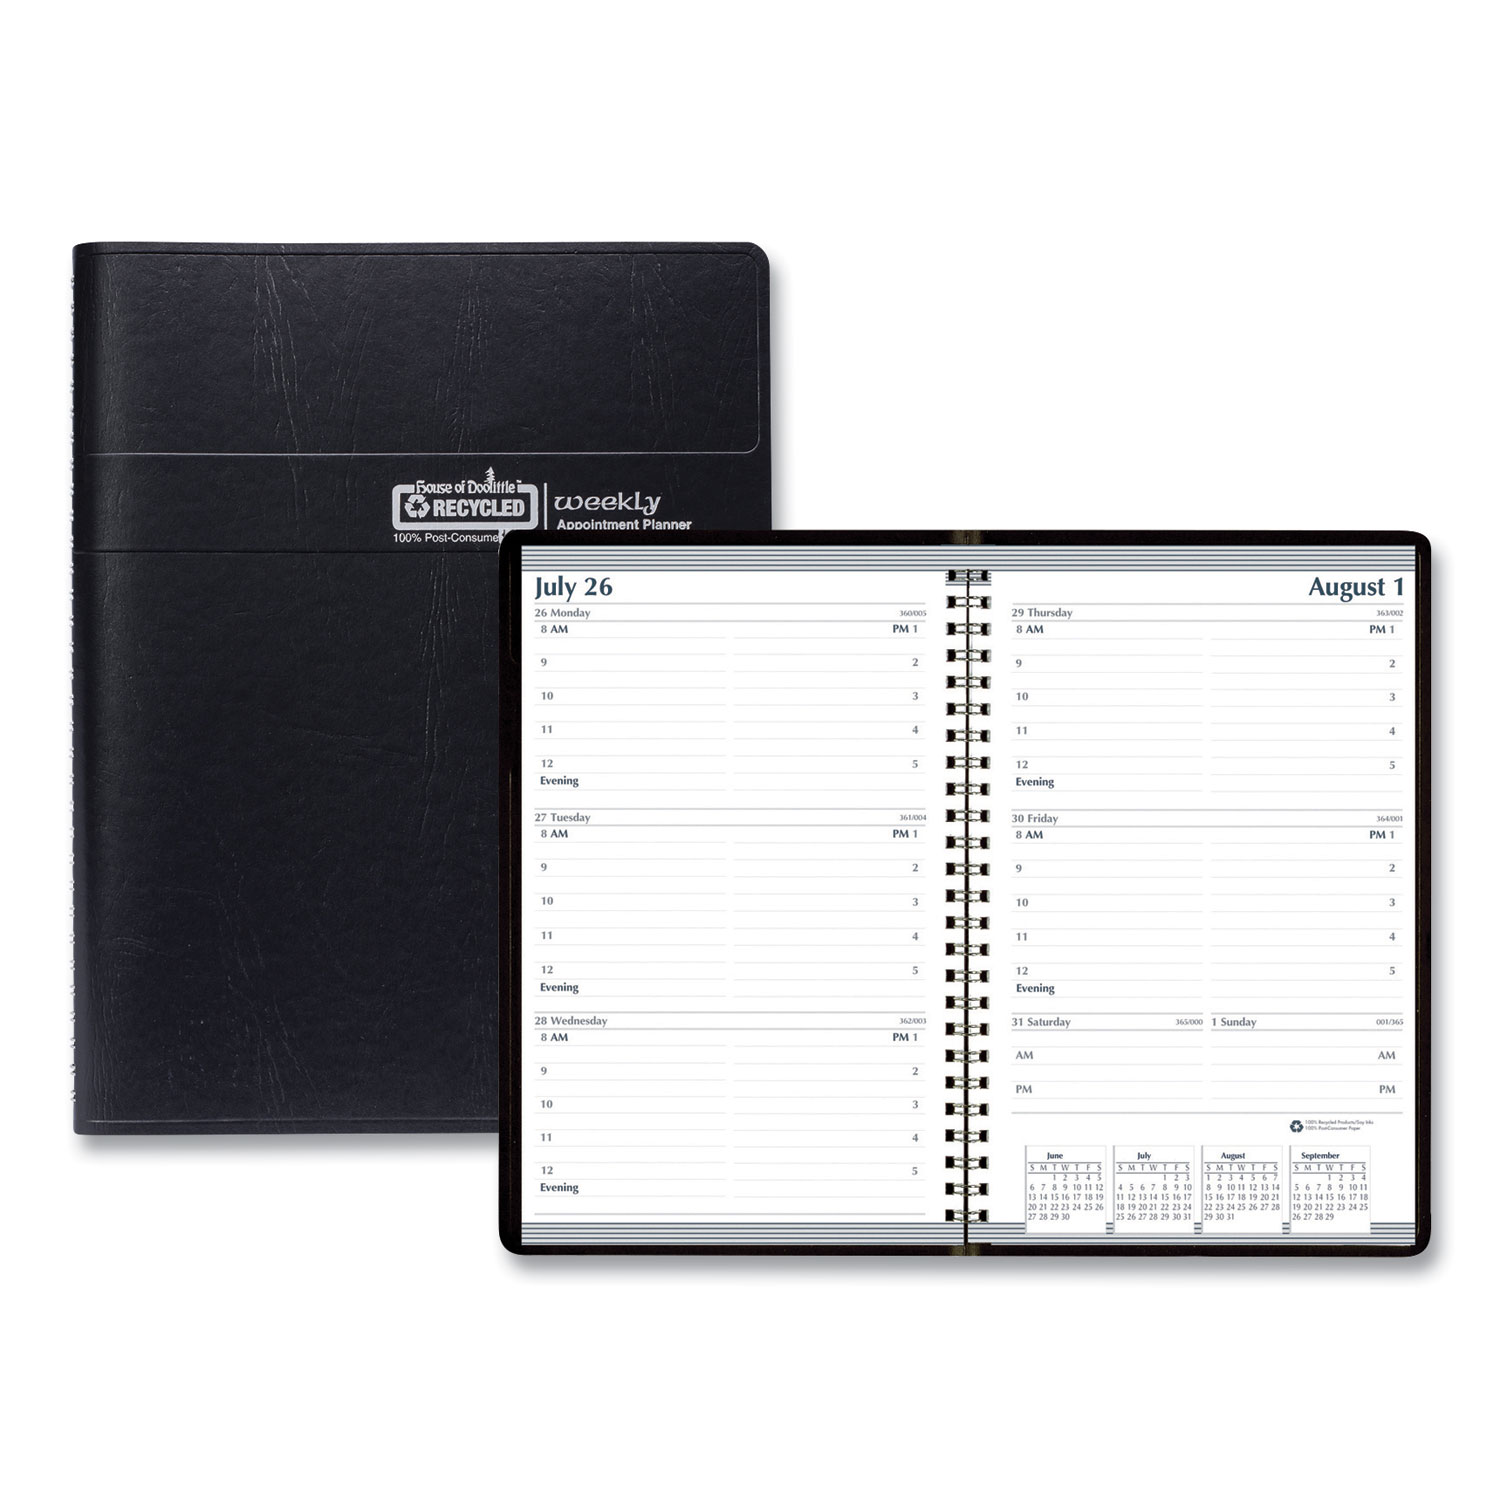 Recycled Weekly Appointment Book, 30-Minute Appointments, 8 x 5, Black, 2021